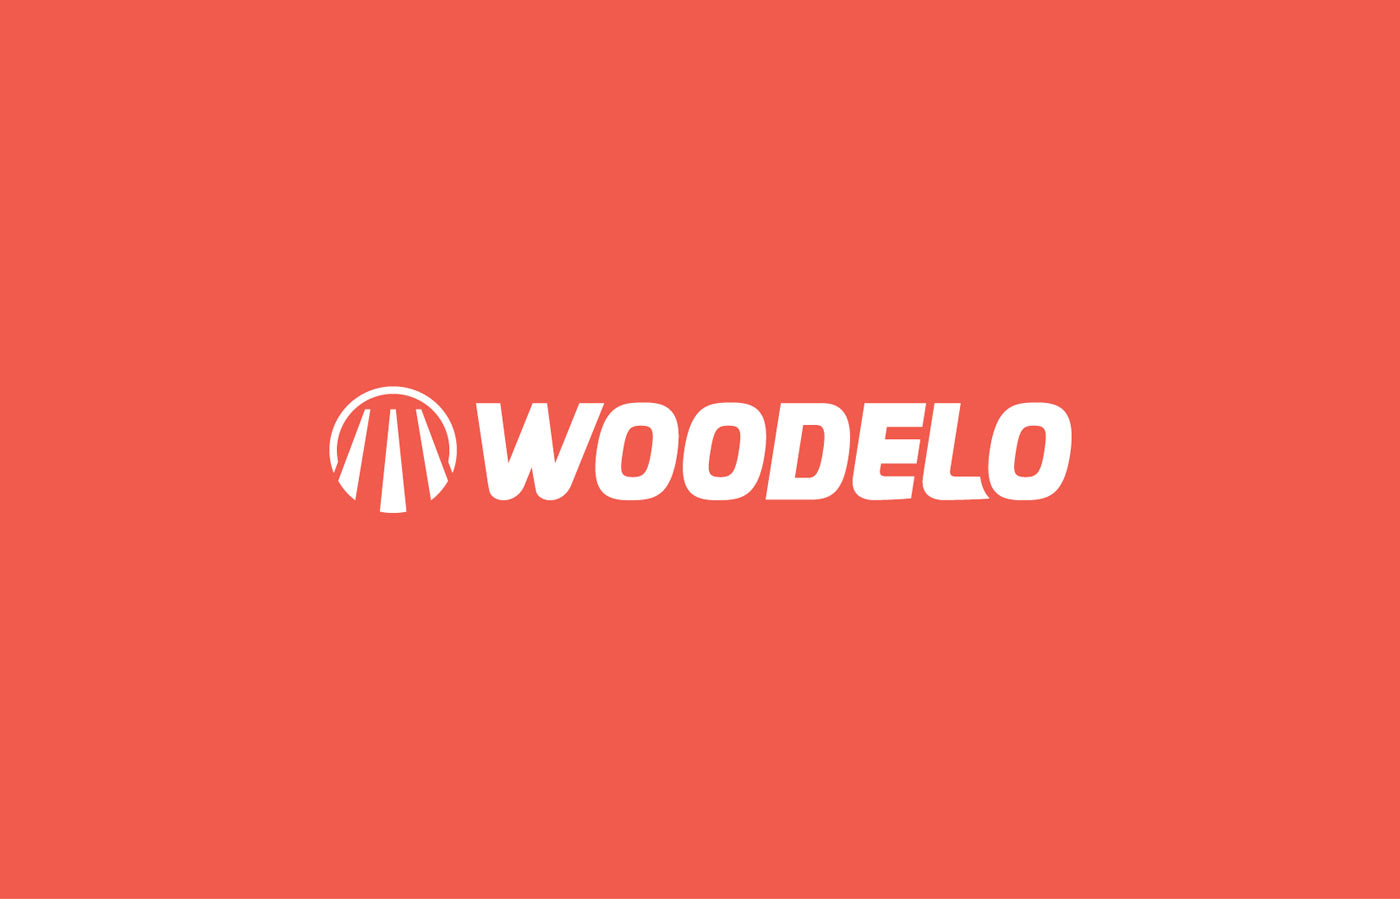 Woodelo logo graphic design white font on red background